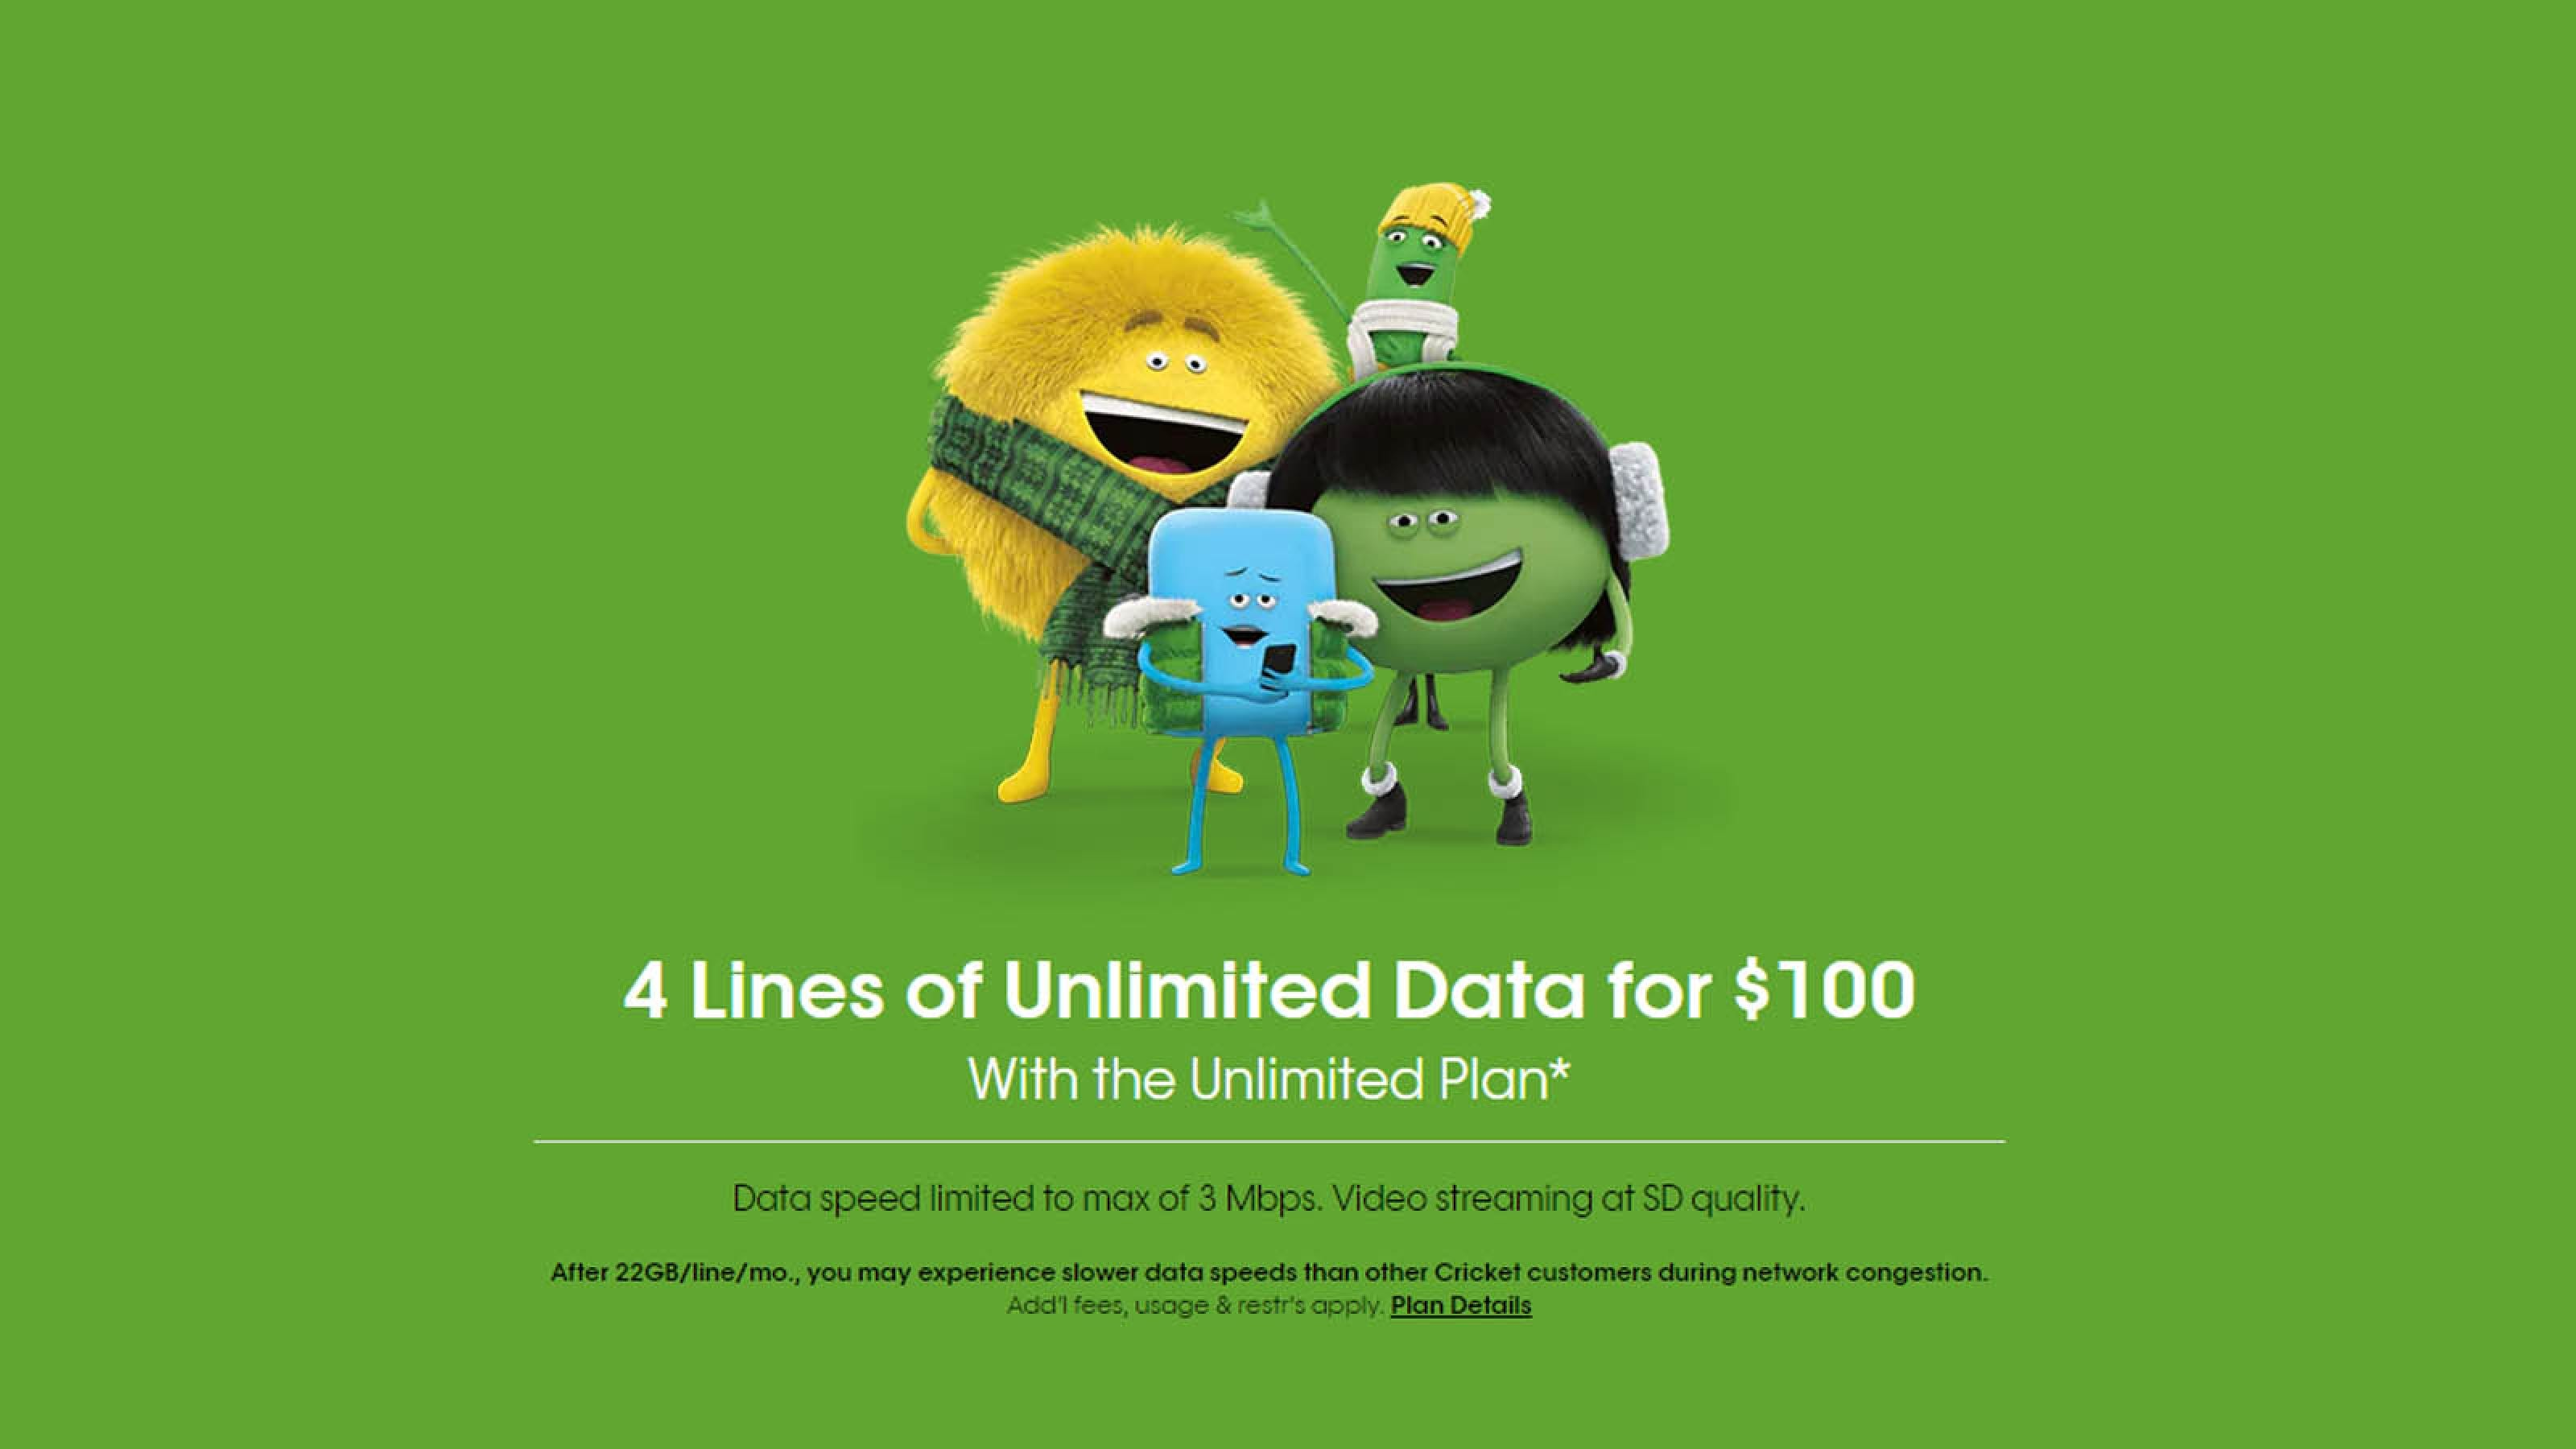 Six Months Later Cricket S Unlimited Plan Is Still The Best